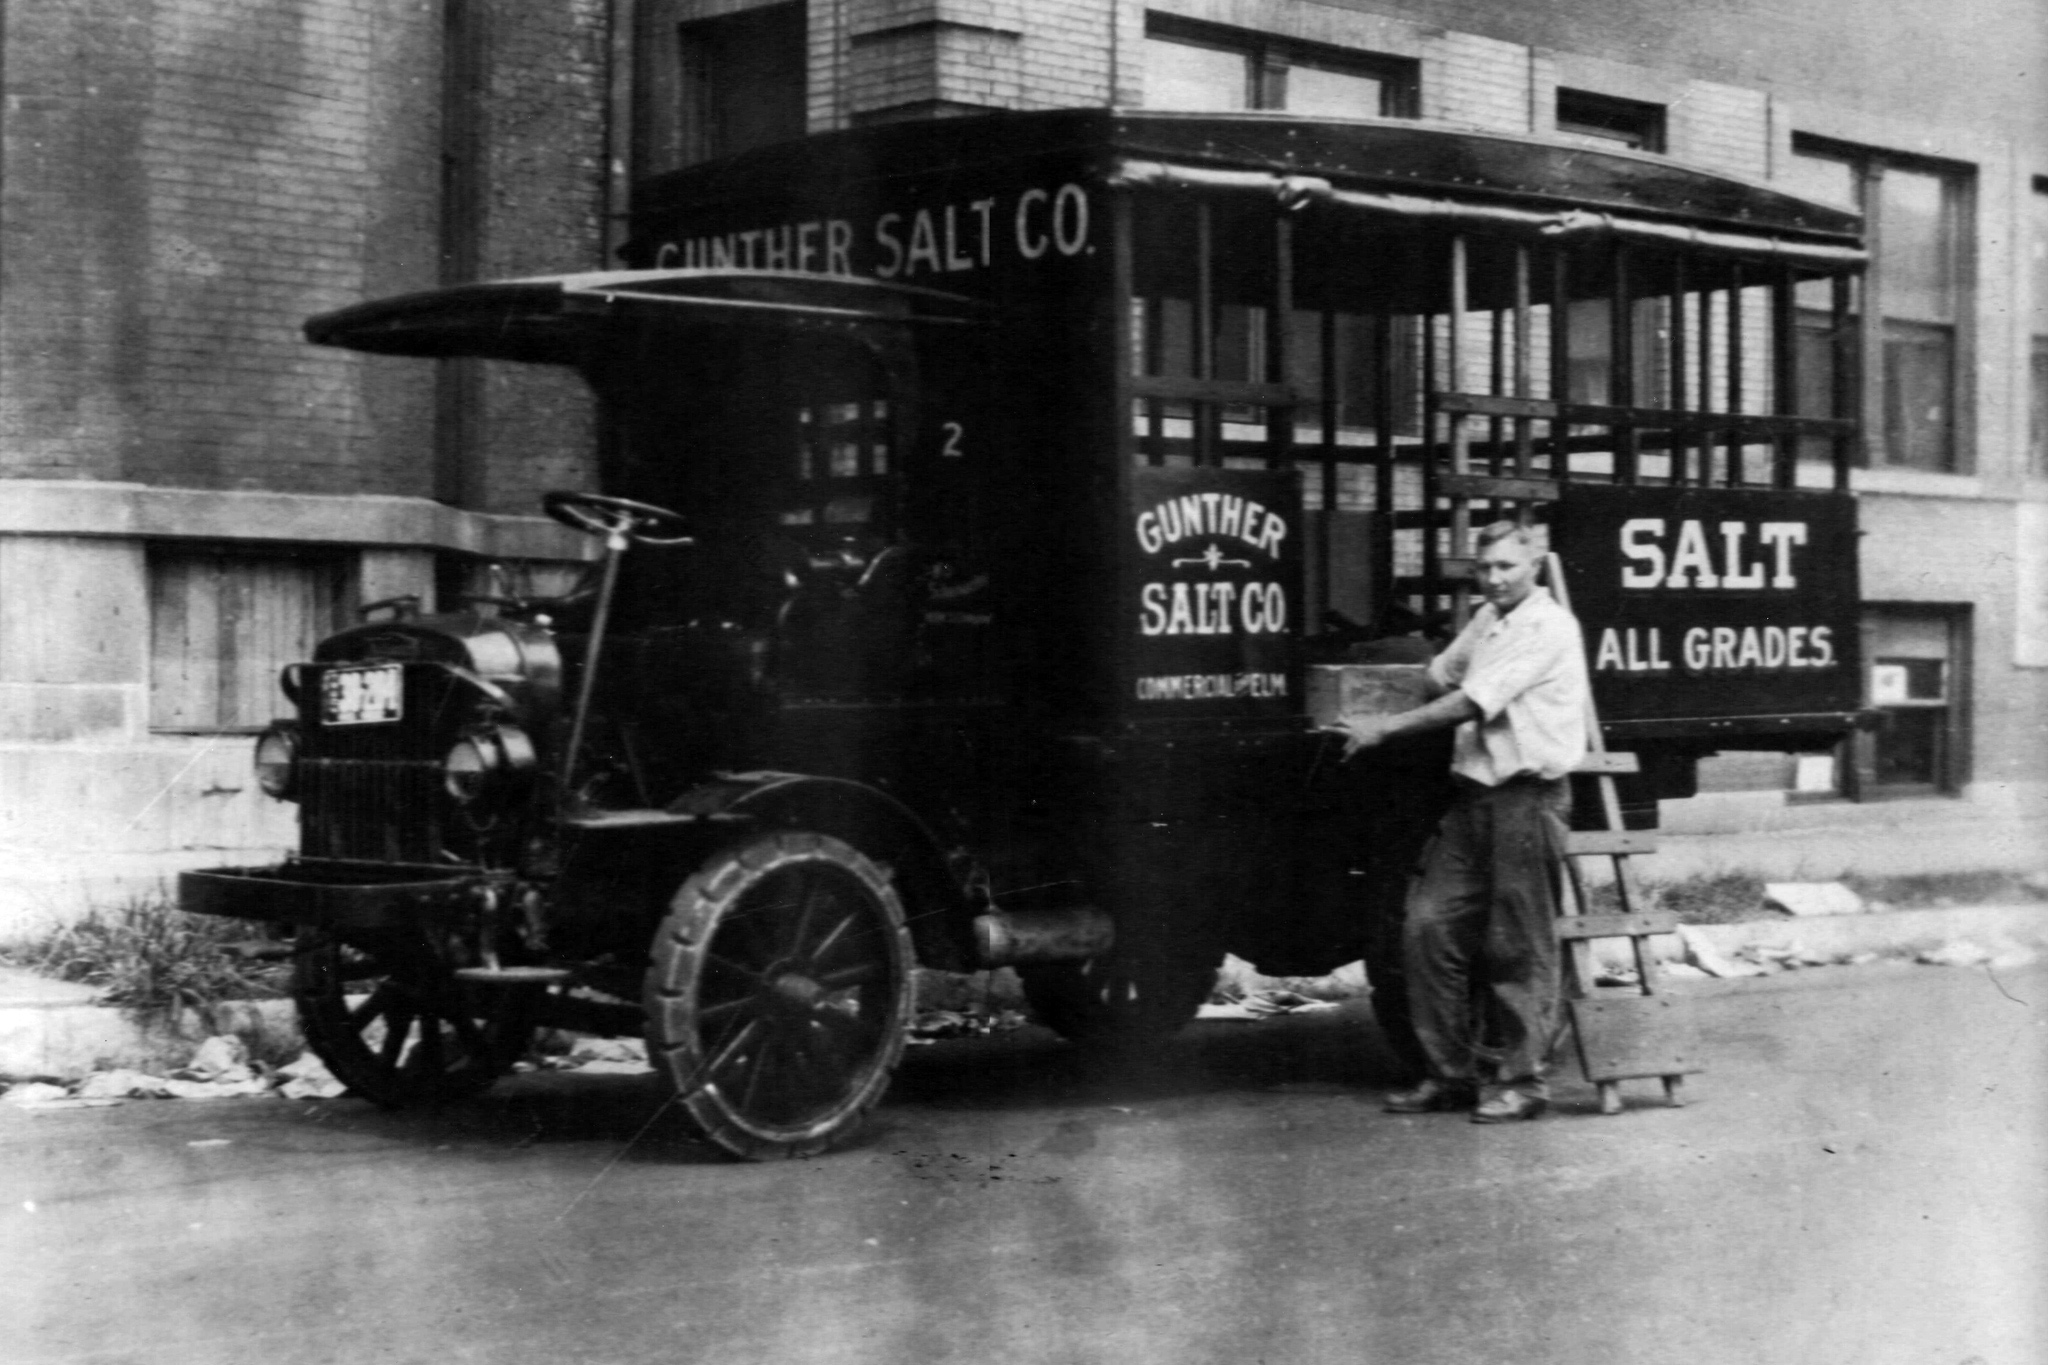 An employee of Gunther Salt Company is either loading or unloading the Gunther Salt Company truck to make his salt delivery. This photo has a date of August 15, 1922.